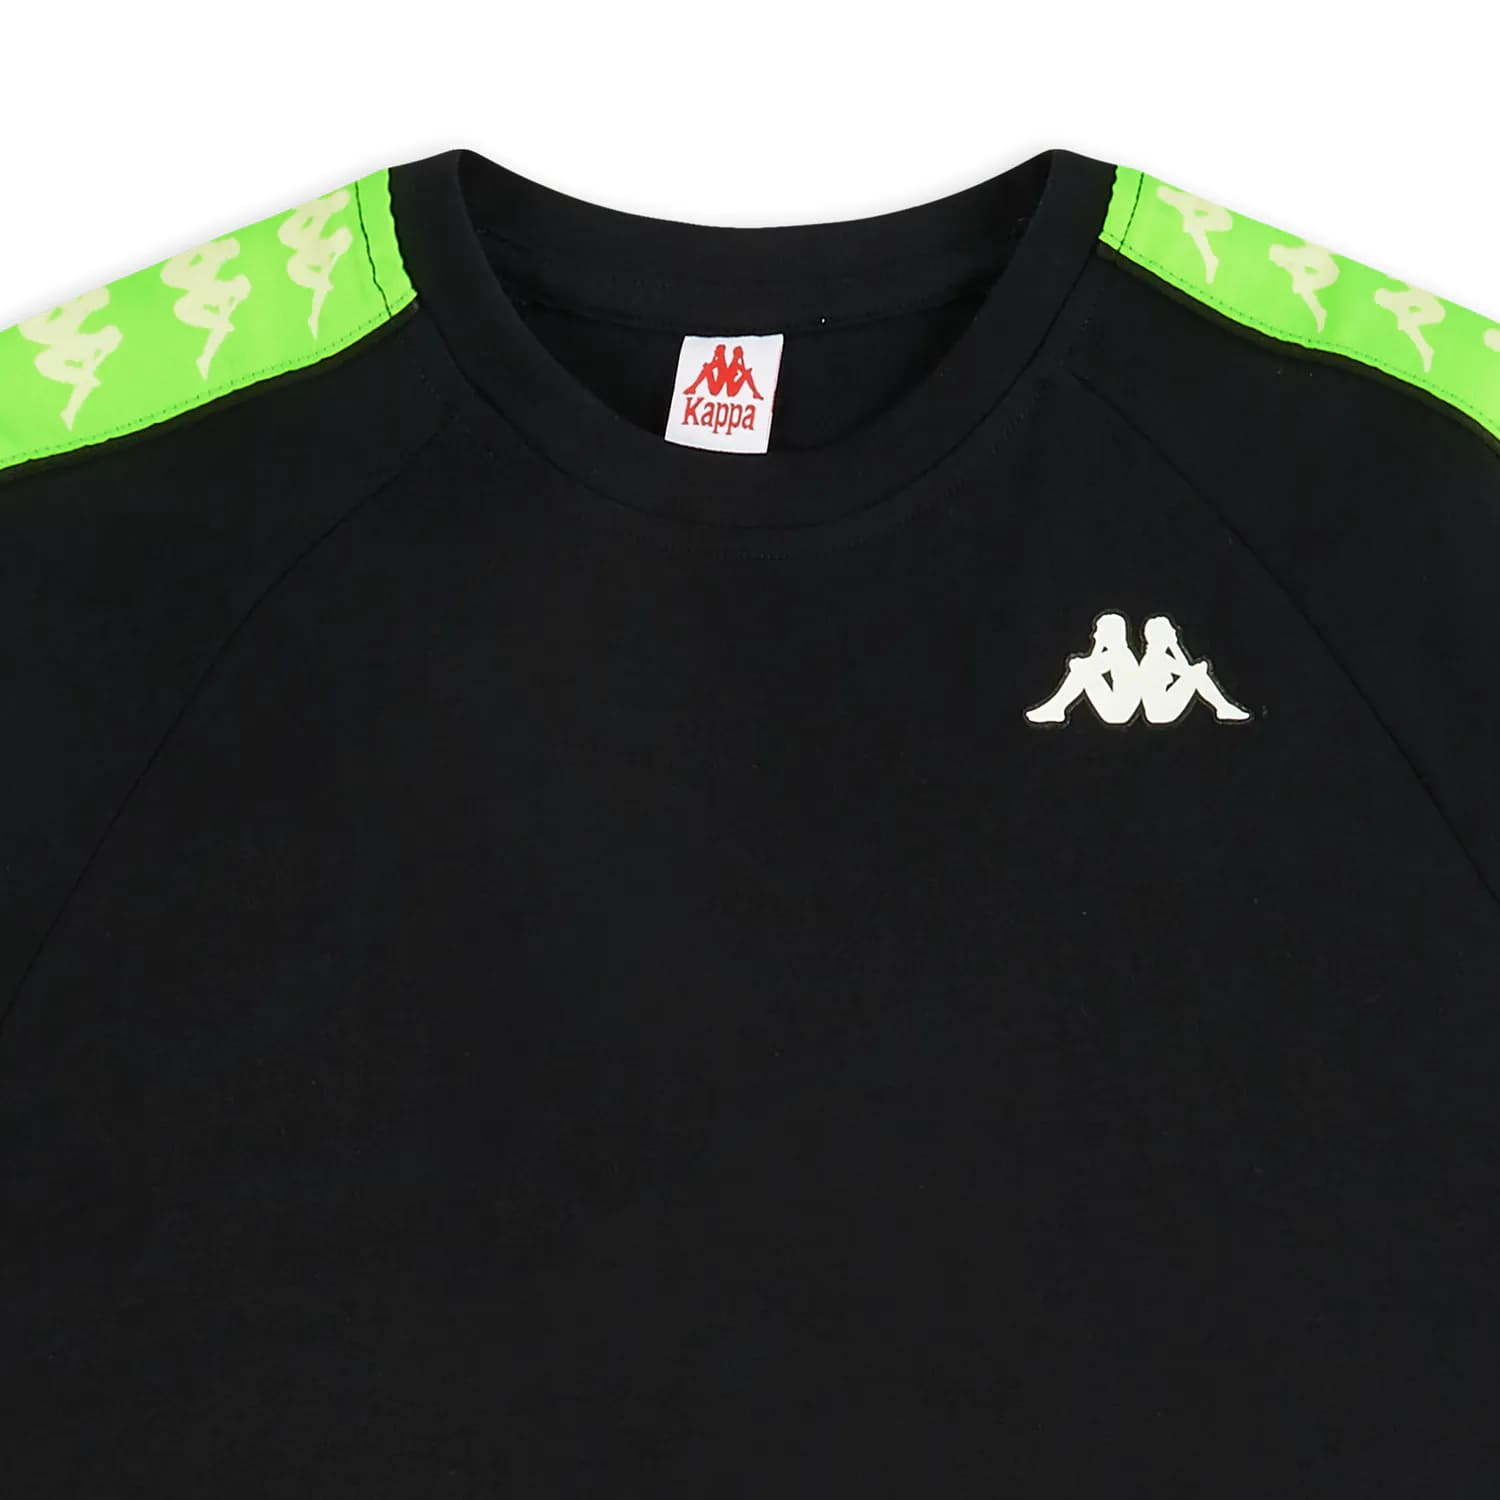 Kappa T-Shirt 222 Banda Coen Slim – BLACK:NEON:GREEN 1